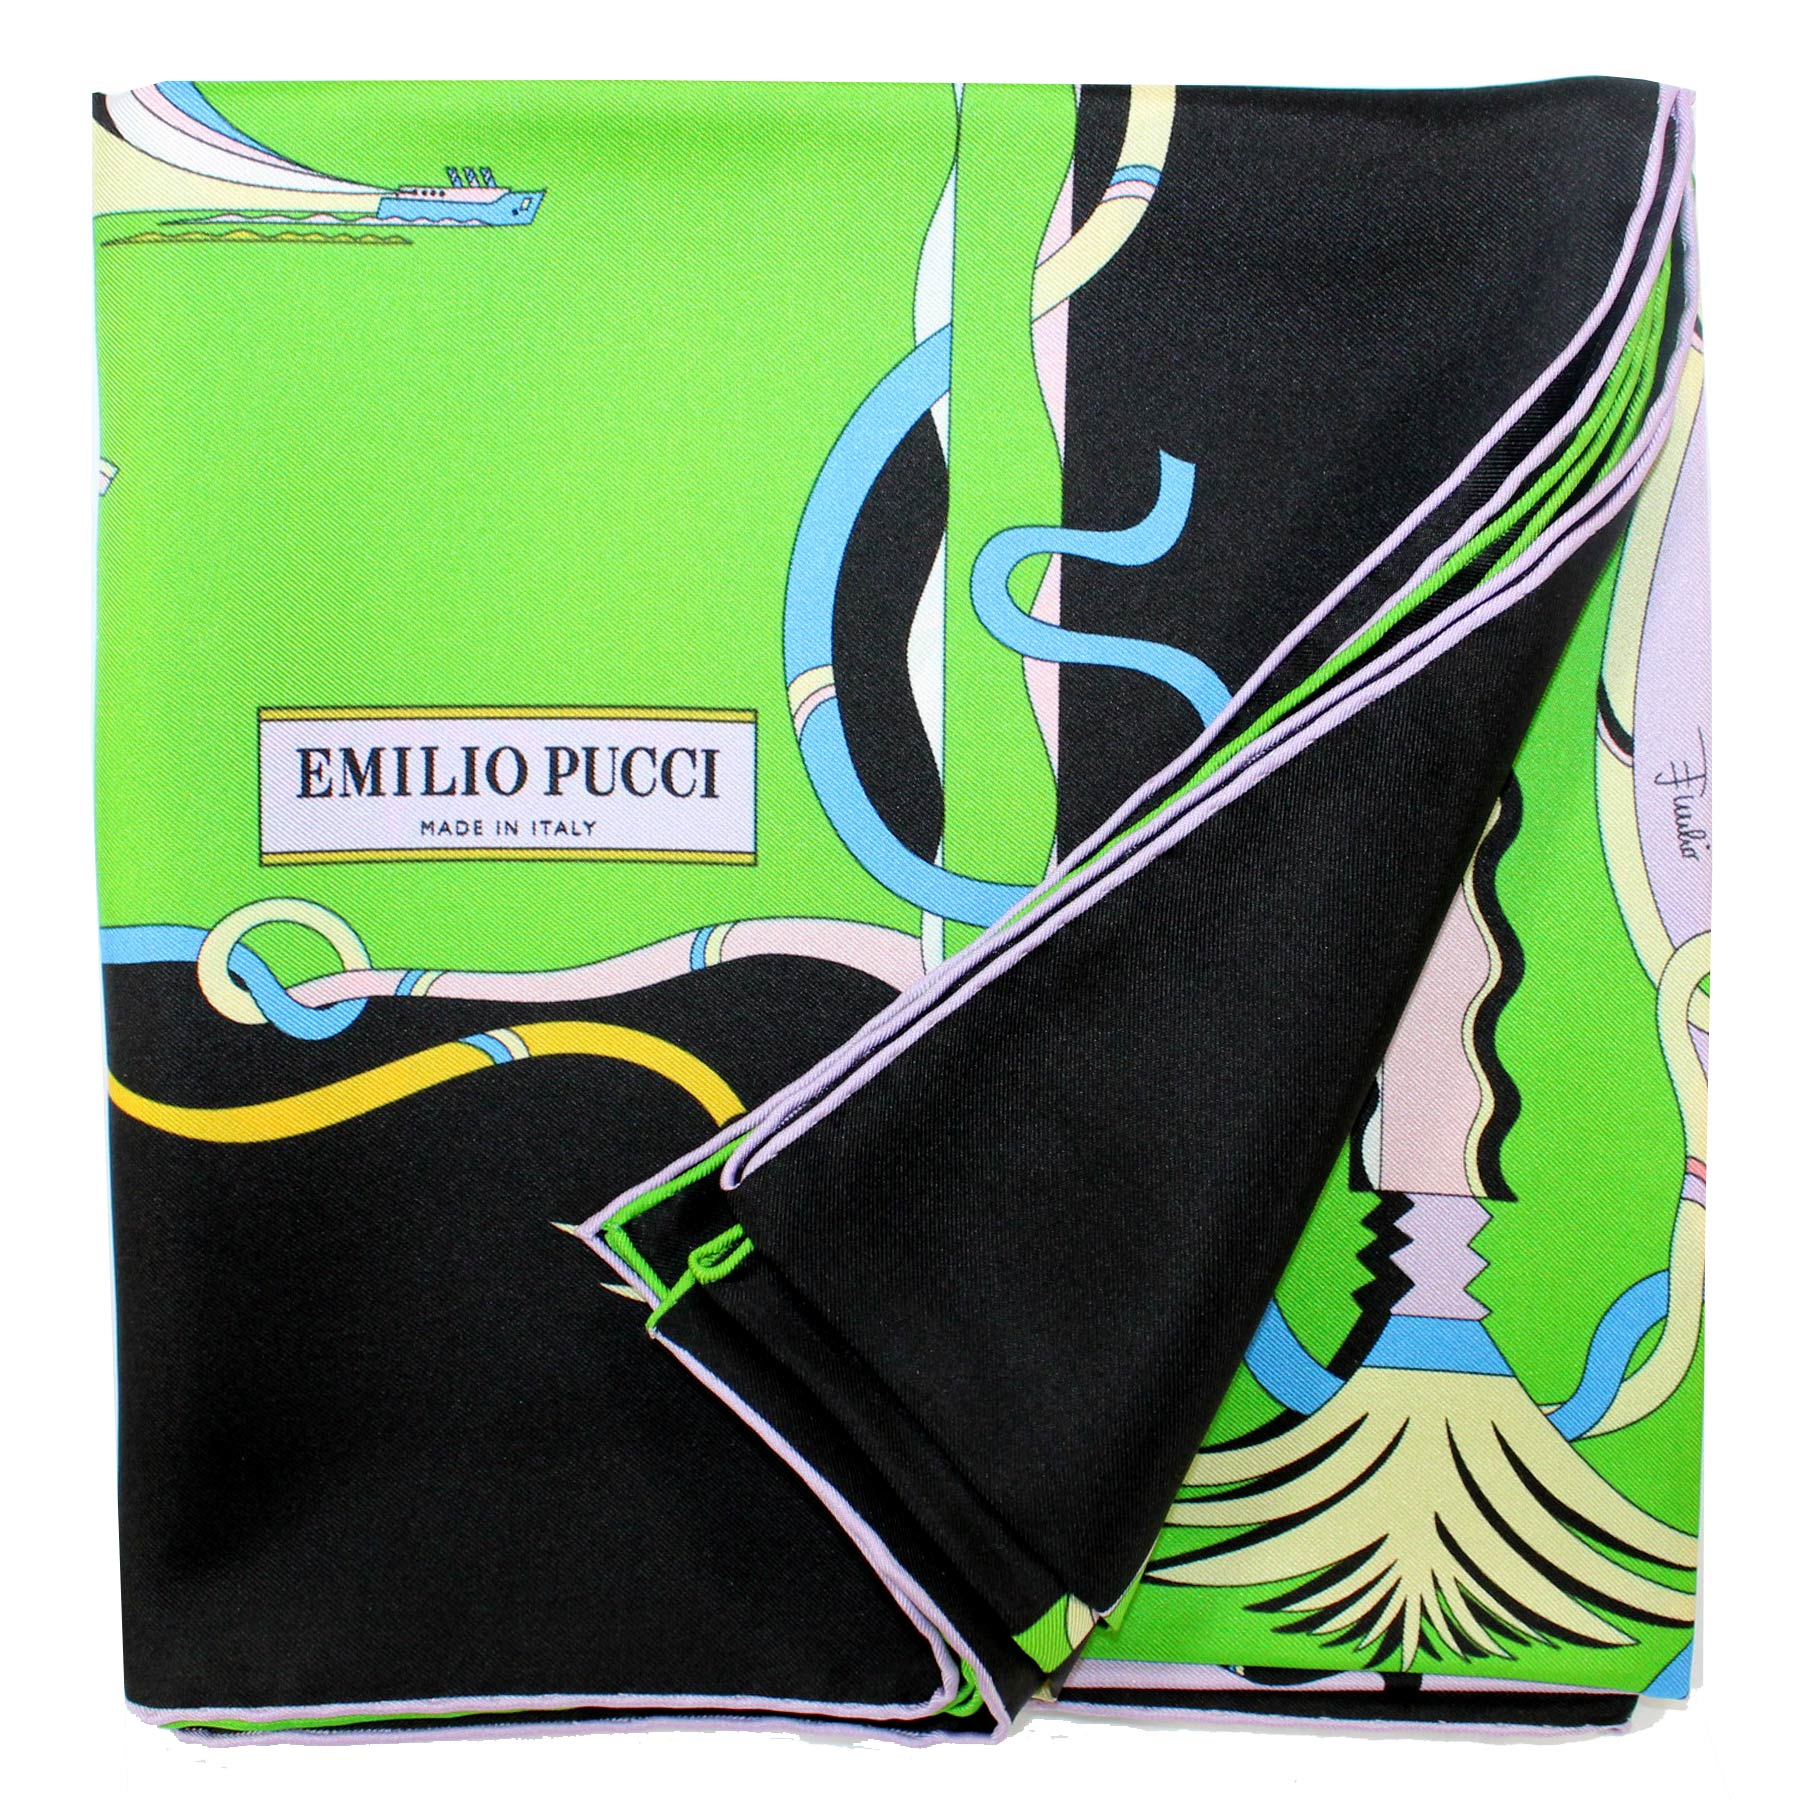 Emilio Pucci Scarf Paradise Black Lime Lavender - Large Twill Silk Square Scarf